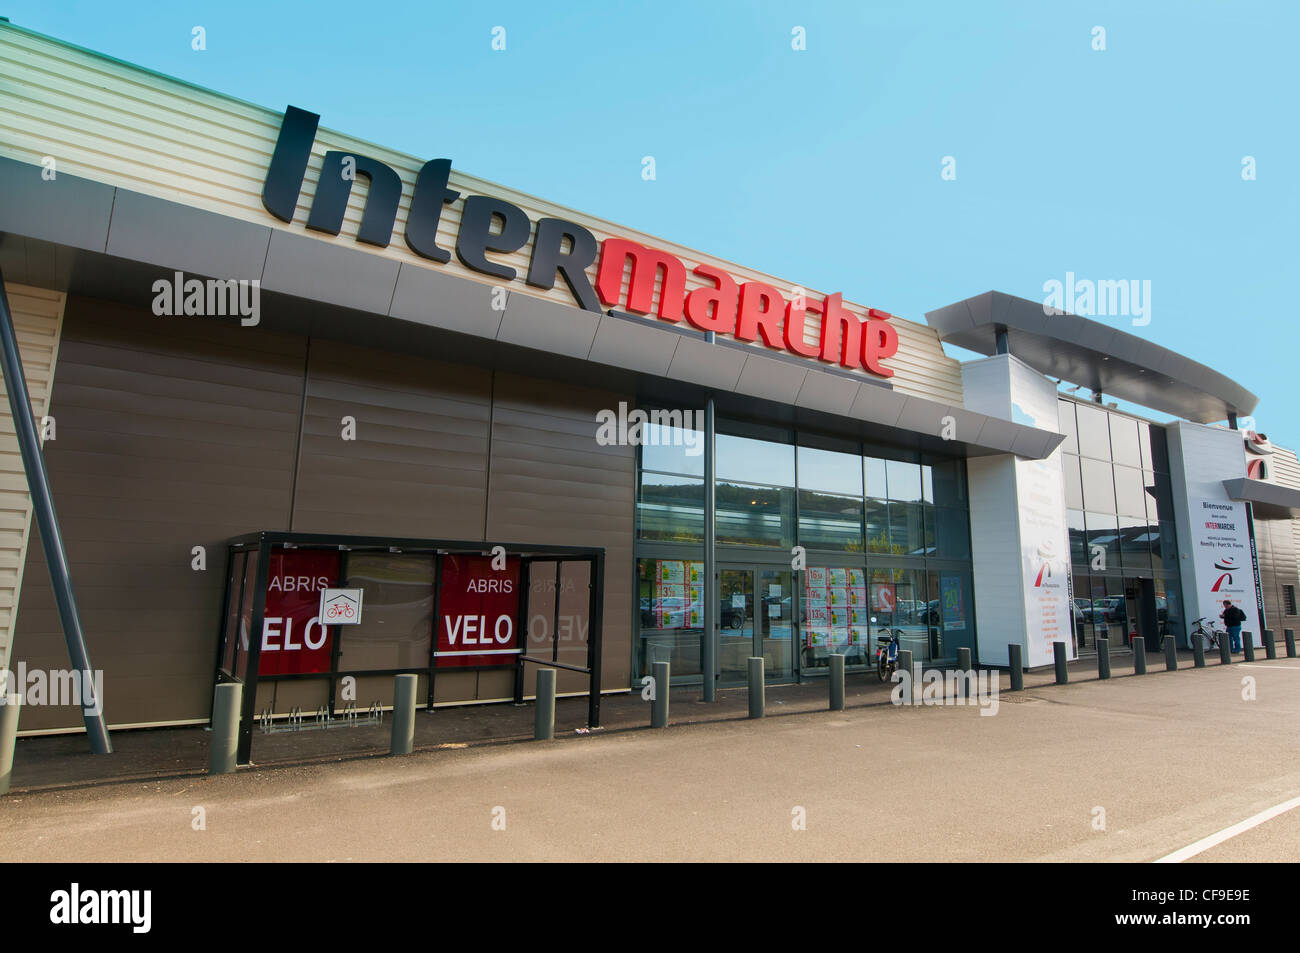 inter marche shop,romilly,pont st.pierre France - Stock Image